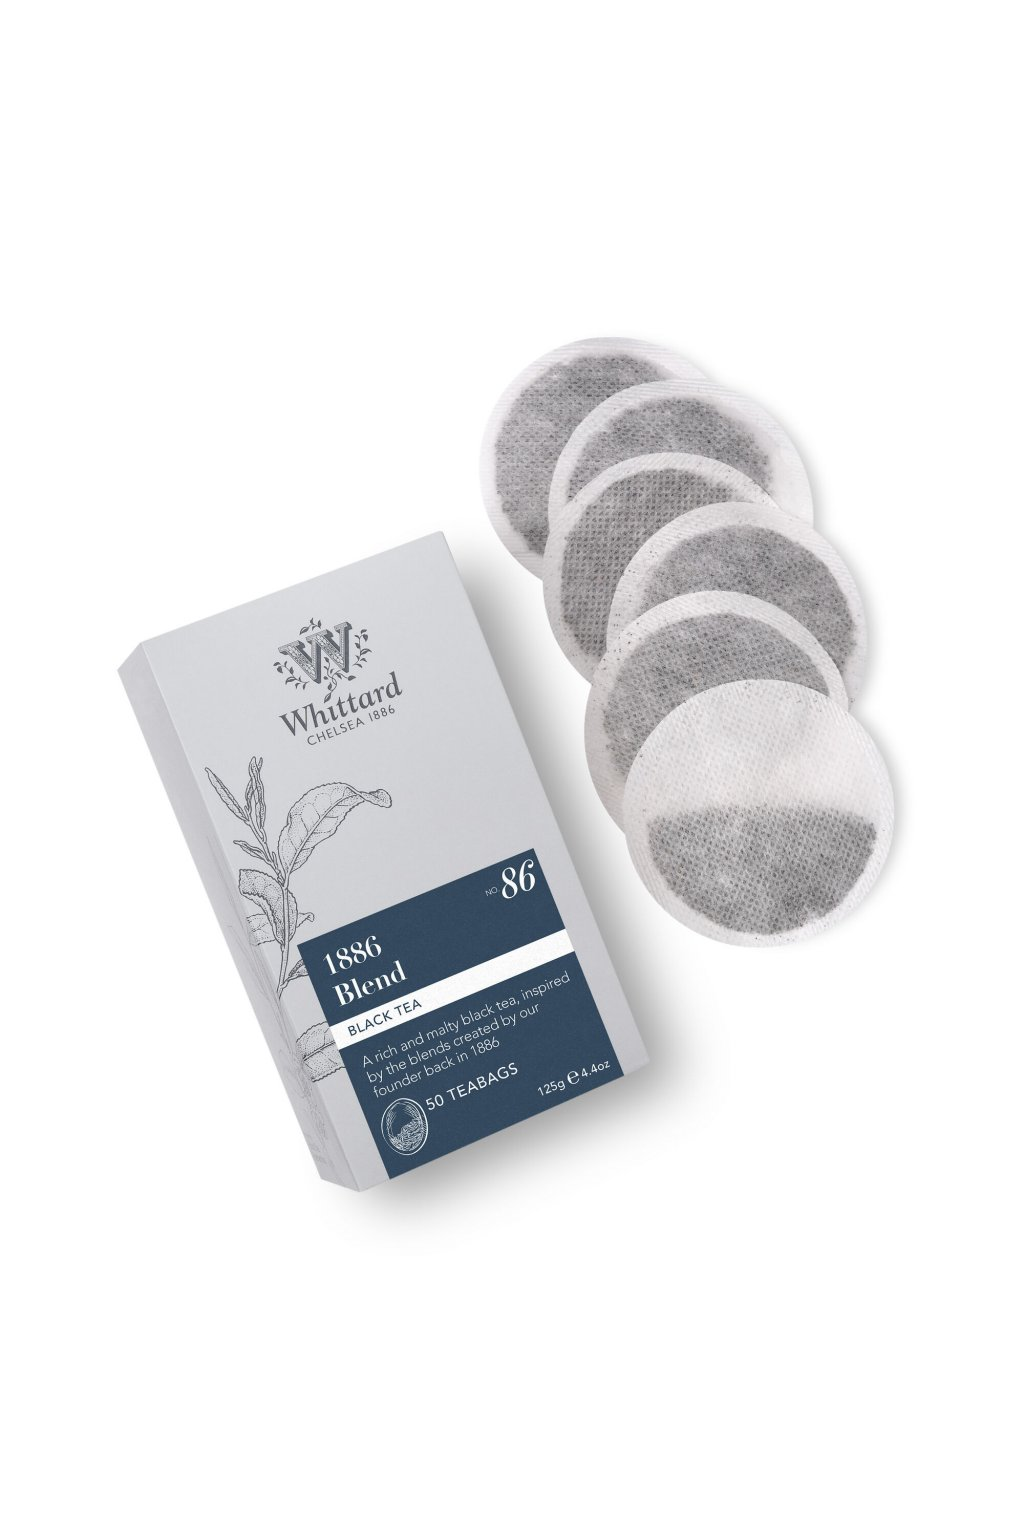 339515 Silver 50 Teabags 1886 Blend 1